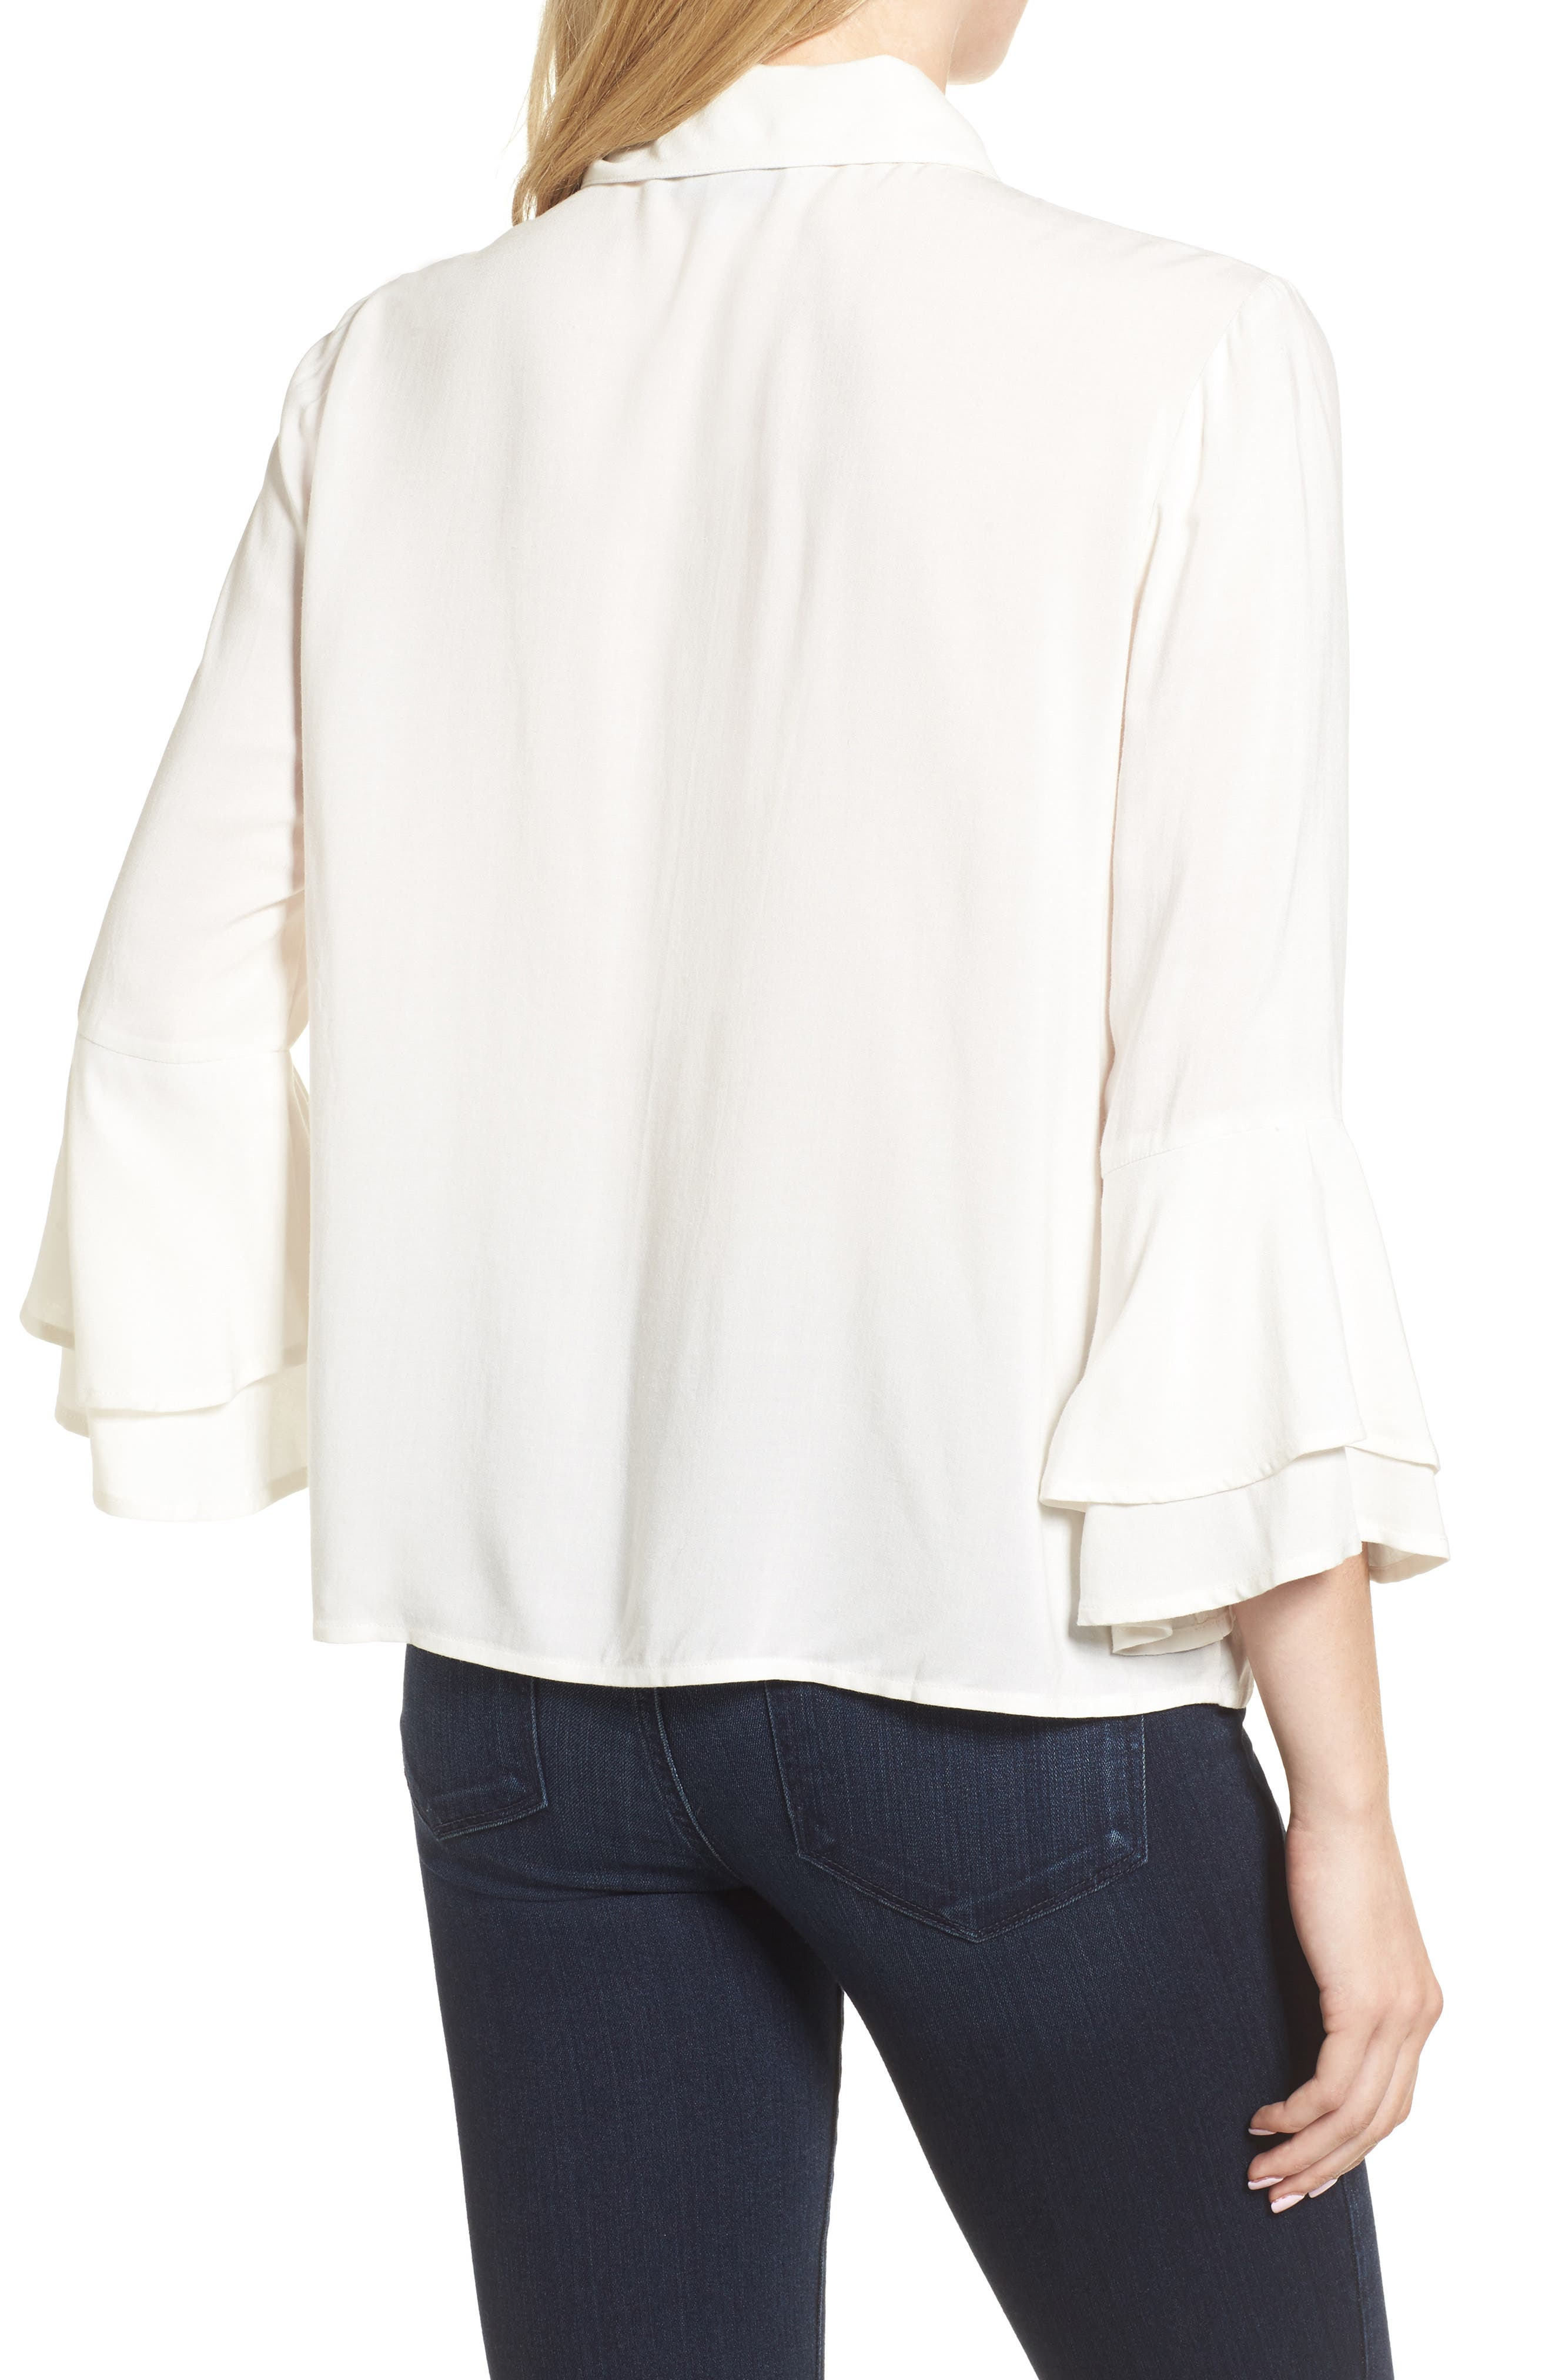 Kymberly Embroidered Blouse,                             Alternate thumbnail 2, color,